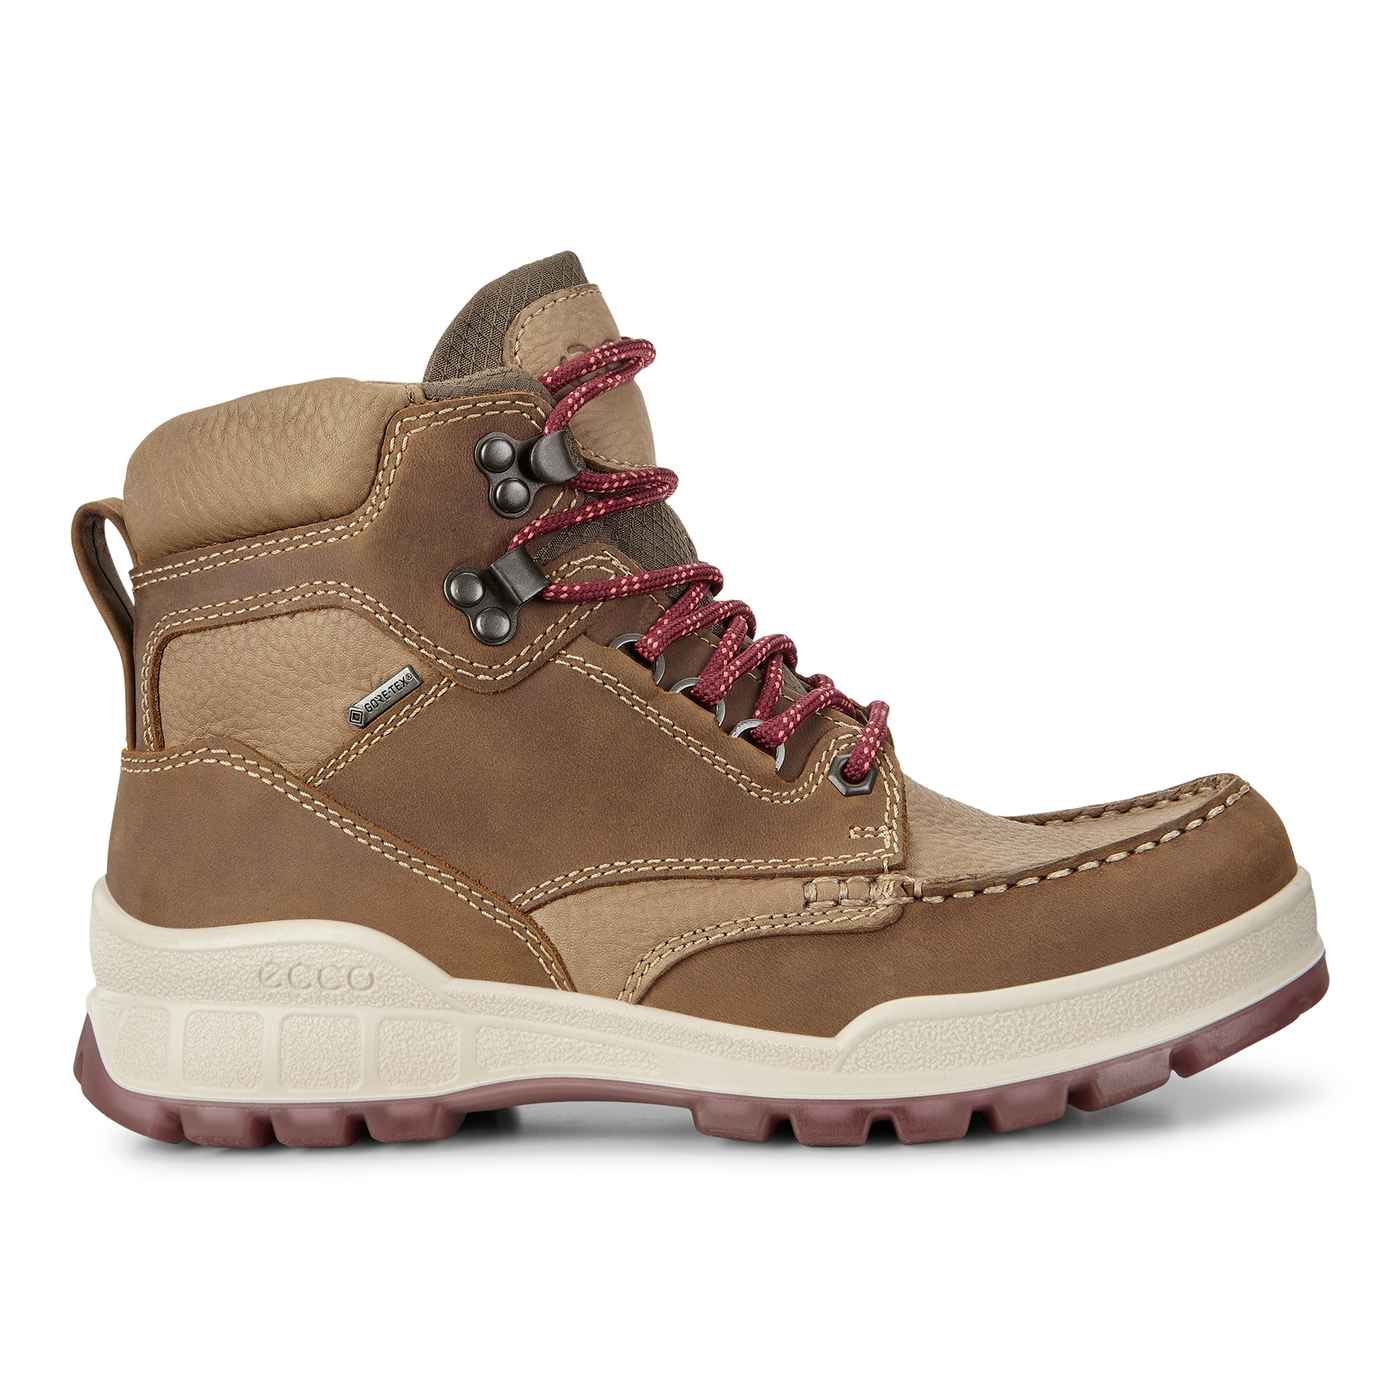 ECCO TRACK25 Ladies HighCut GTX